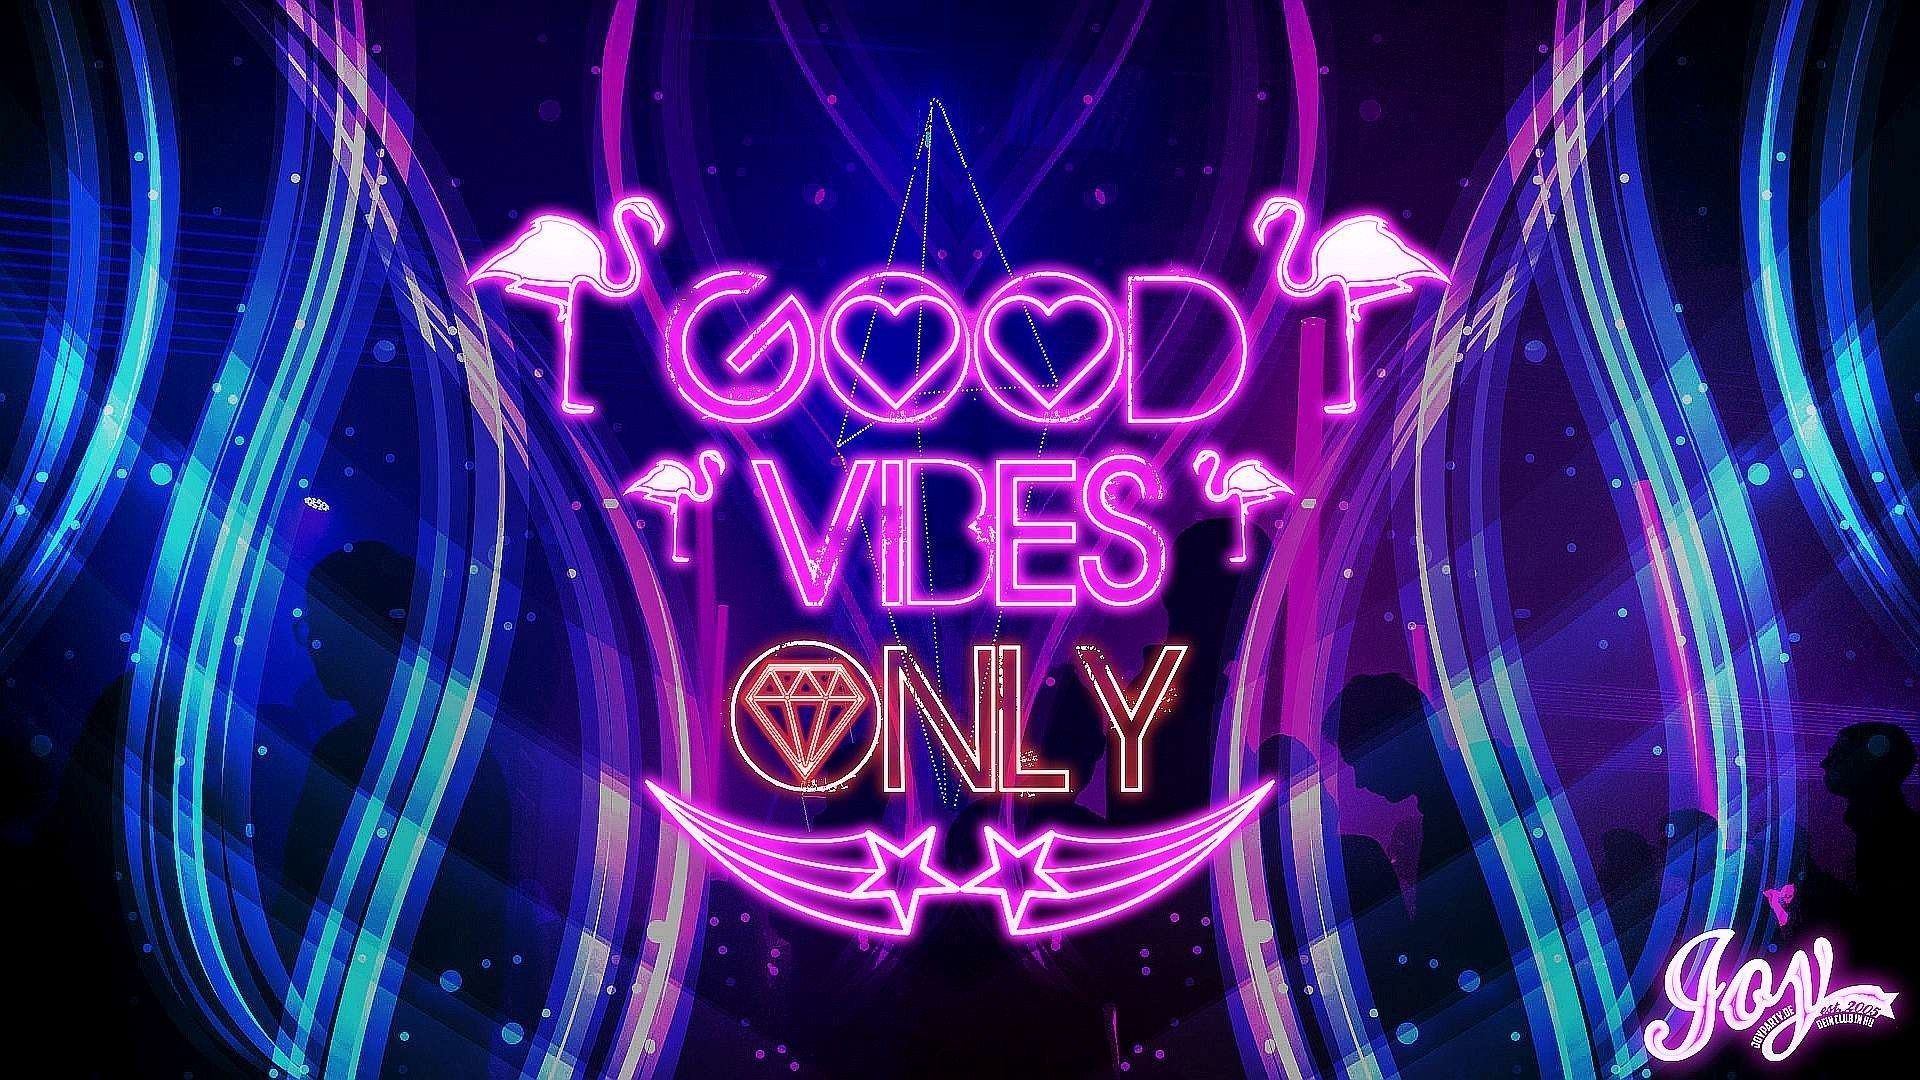 Good Vibes Only Wallpapers - Top Free Good Vibes Only ...